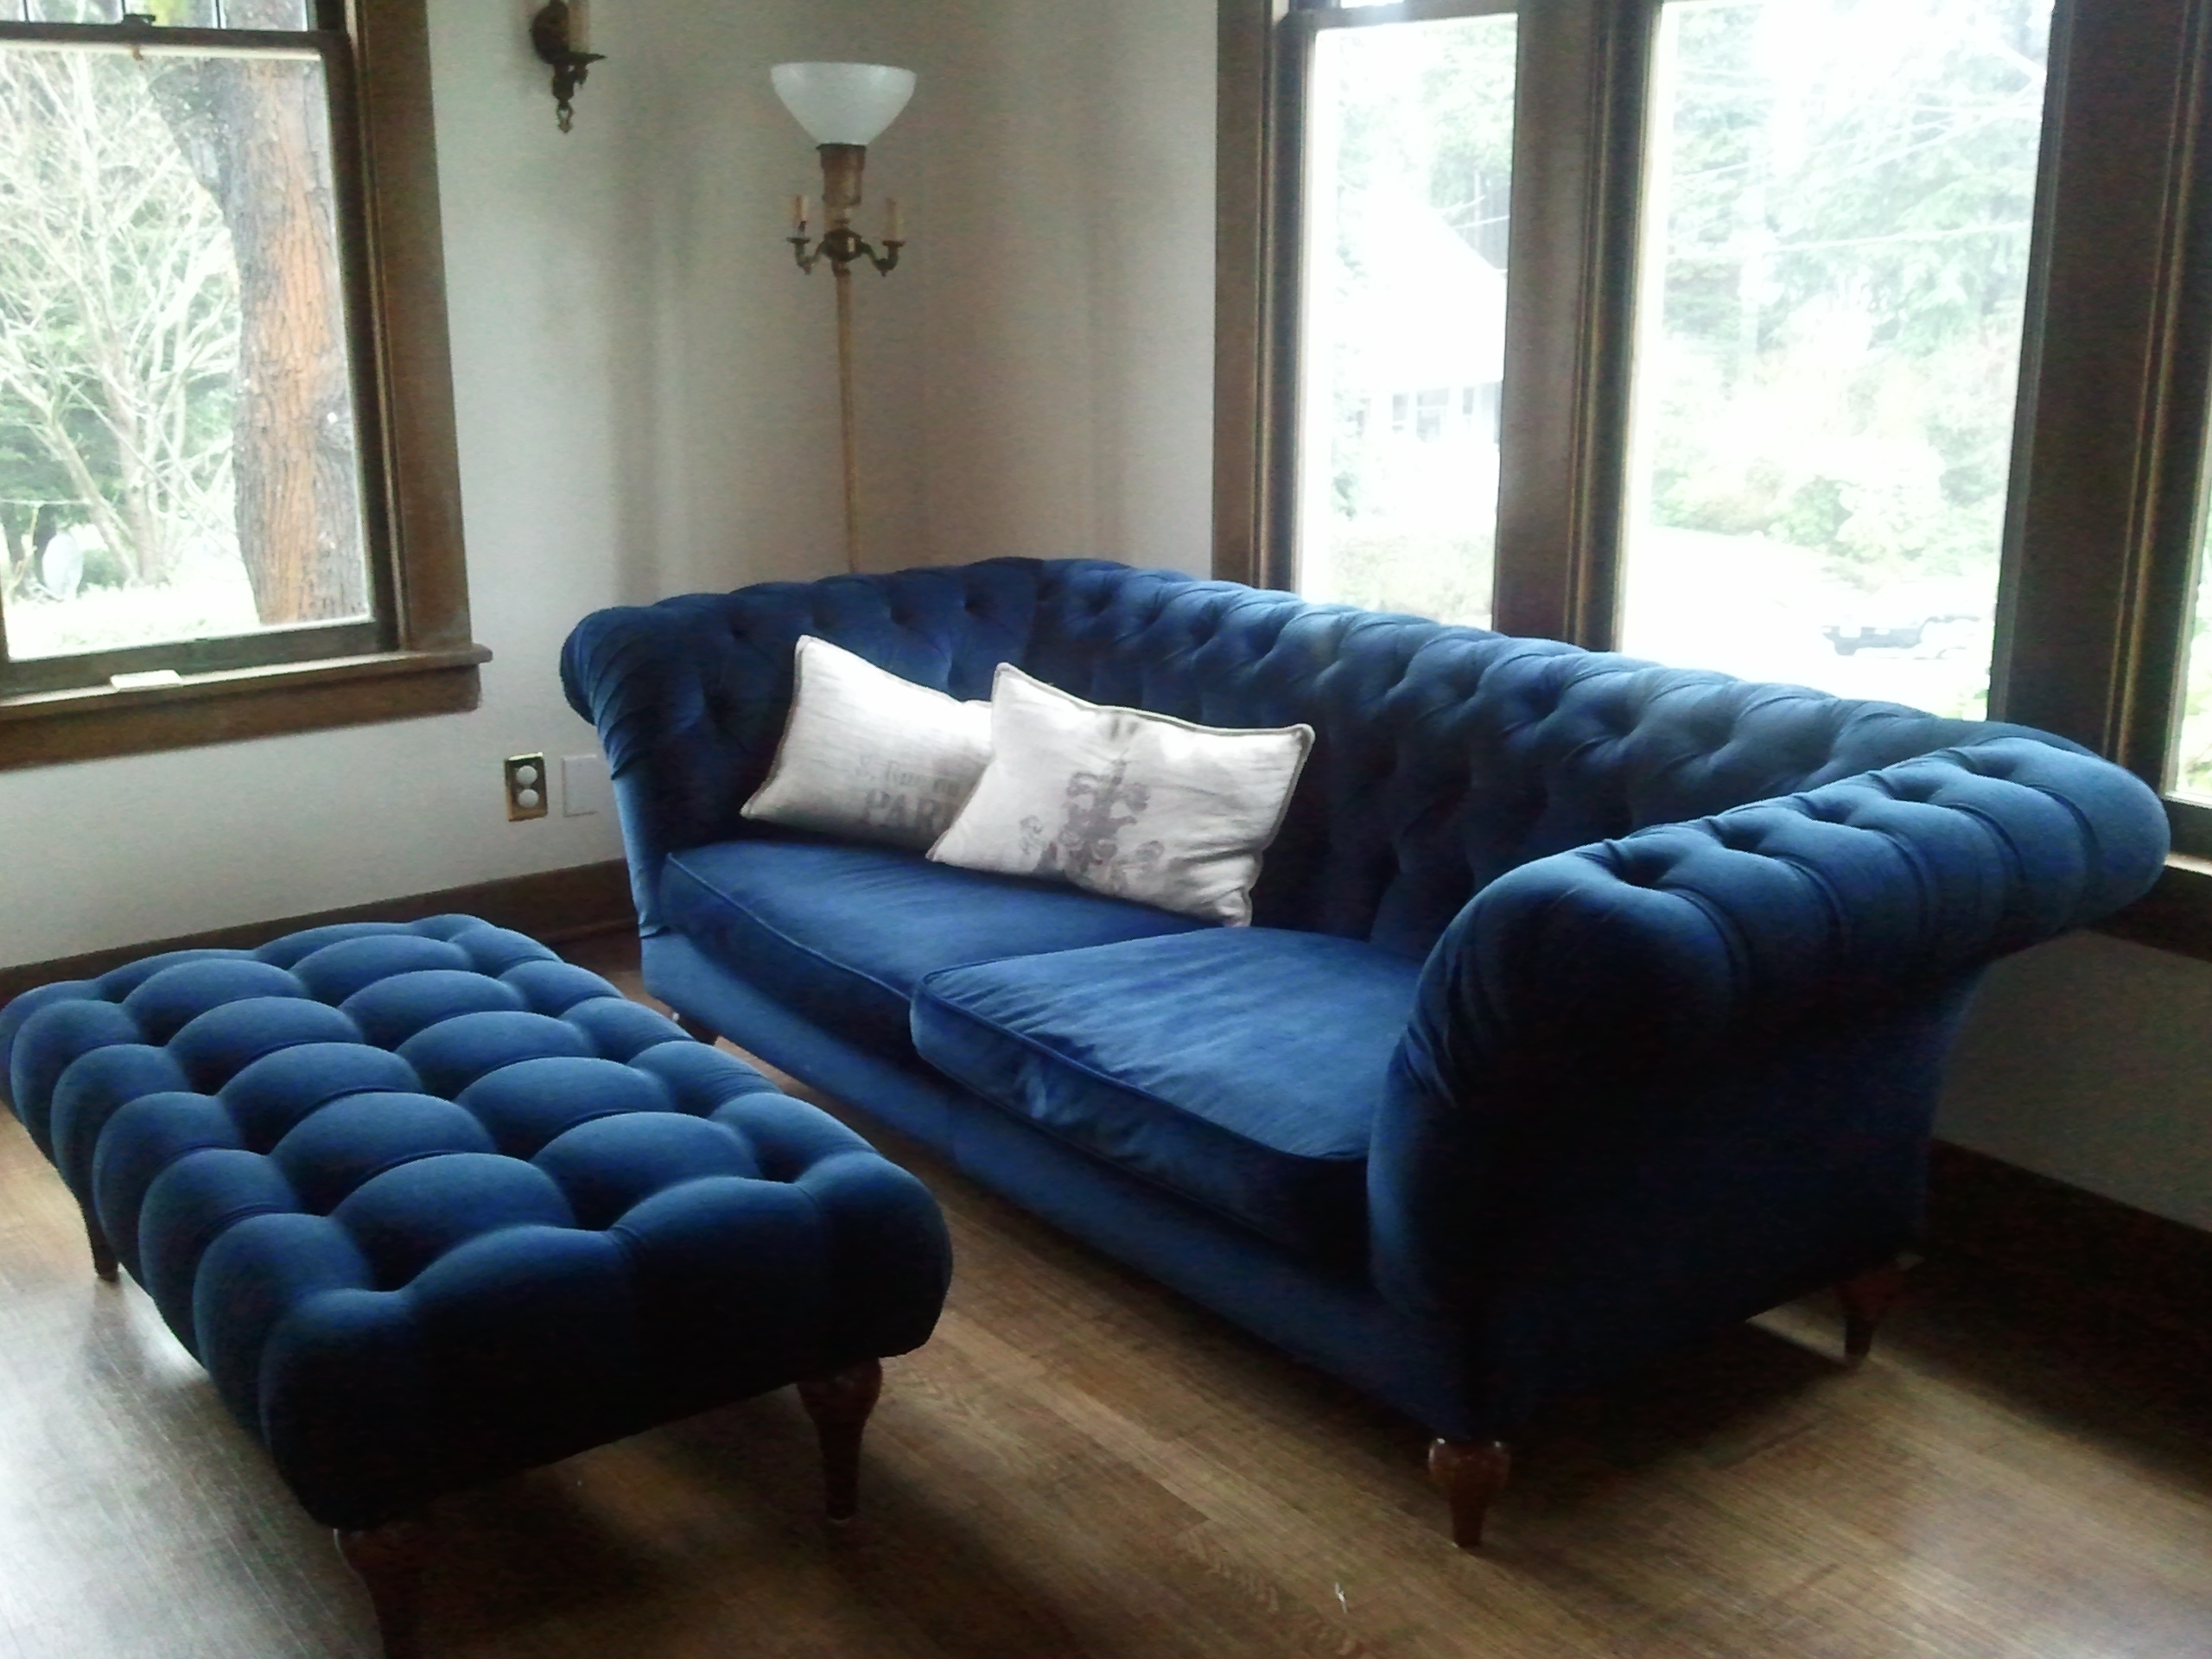 Stylish Sectional Sofas On Craigslist – Mediasupload For Sectional Sofas At Craigslist (View 7 of 10)